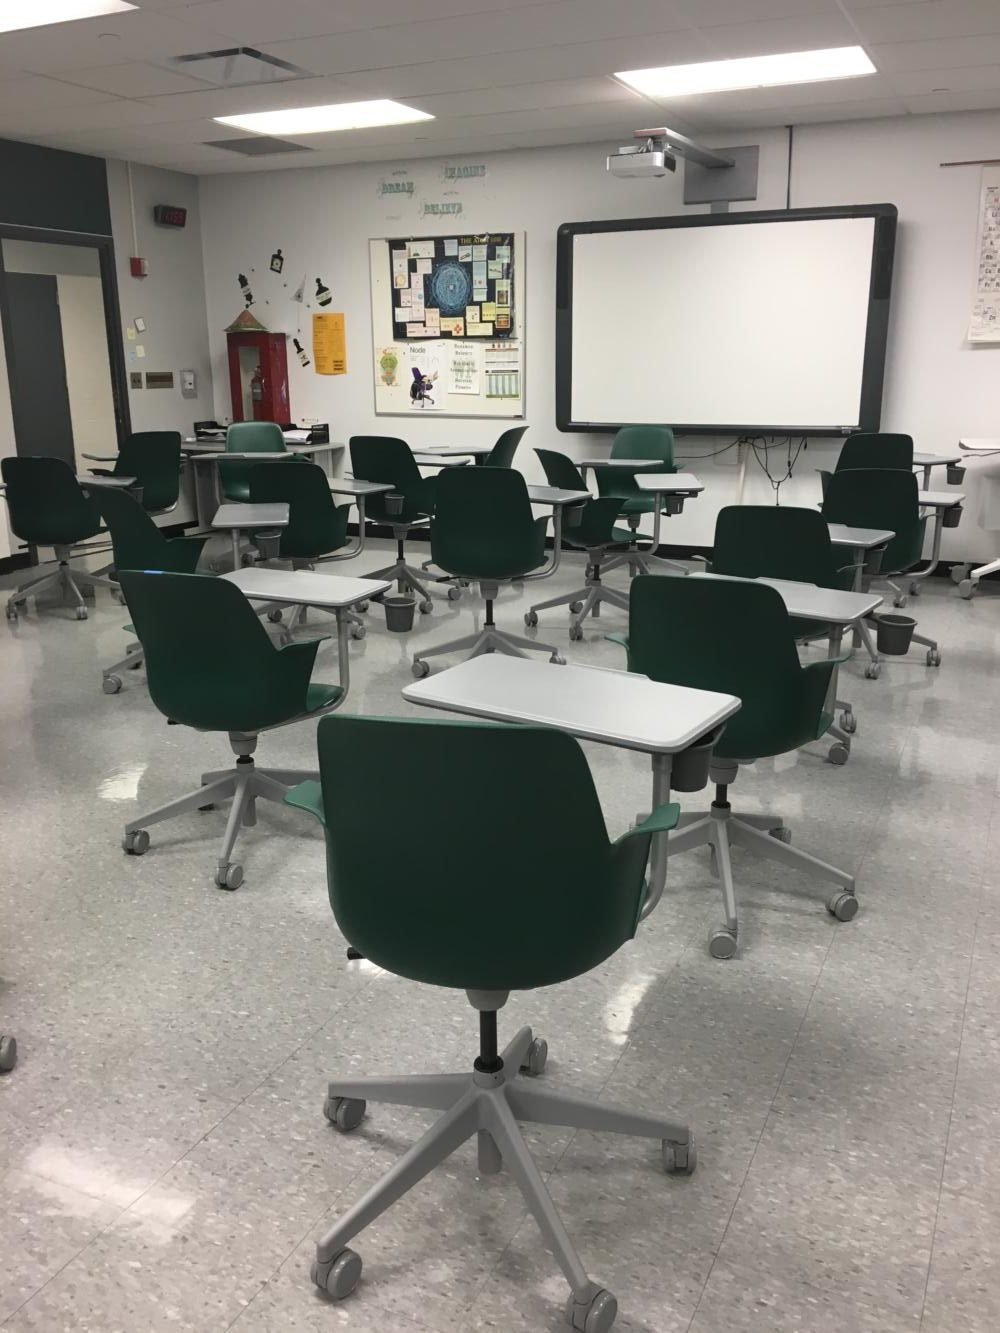 The new flexible furniture of Mrs. Ismail's classroom.